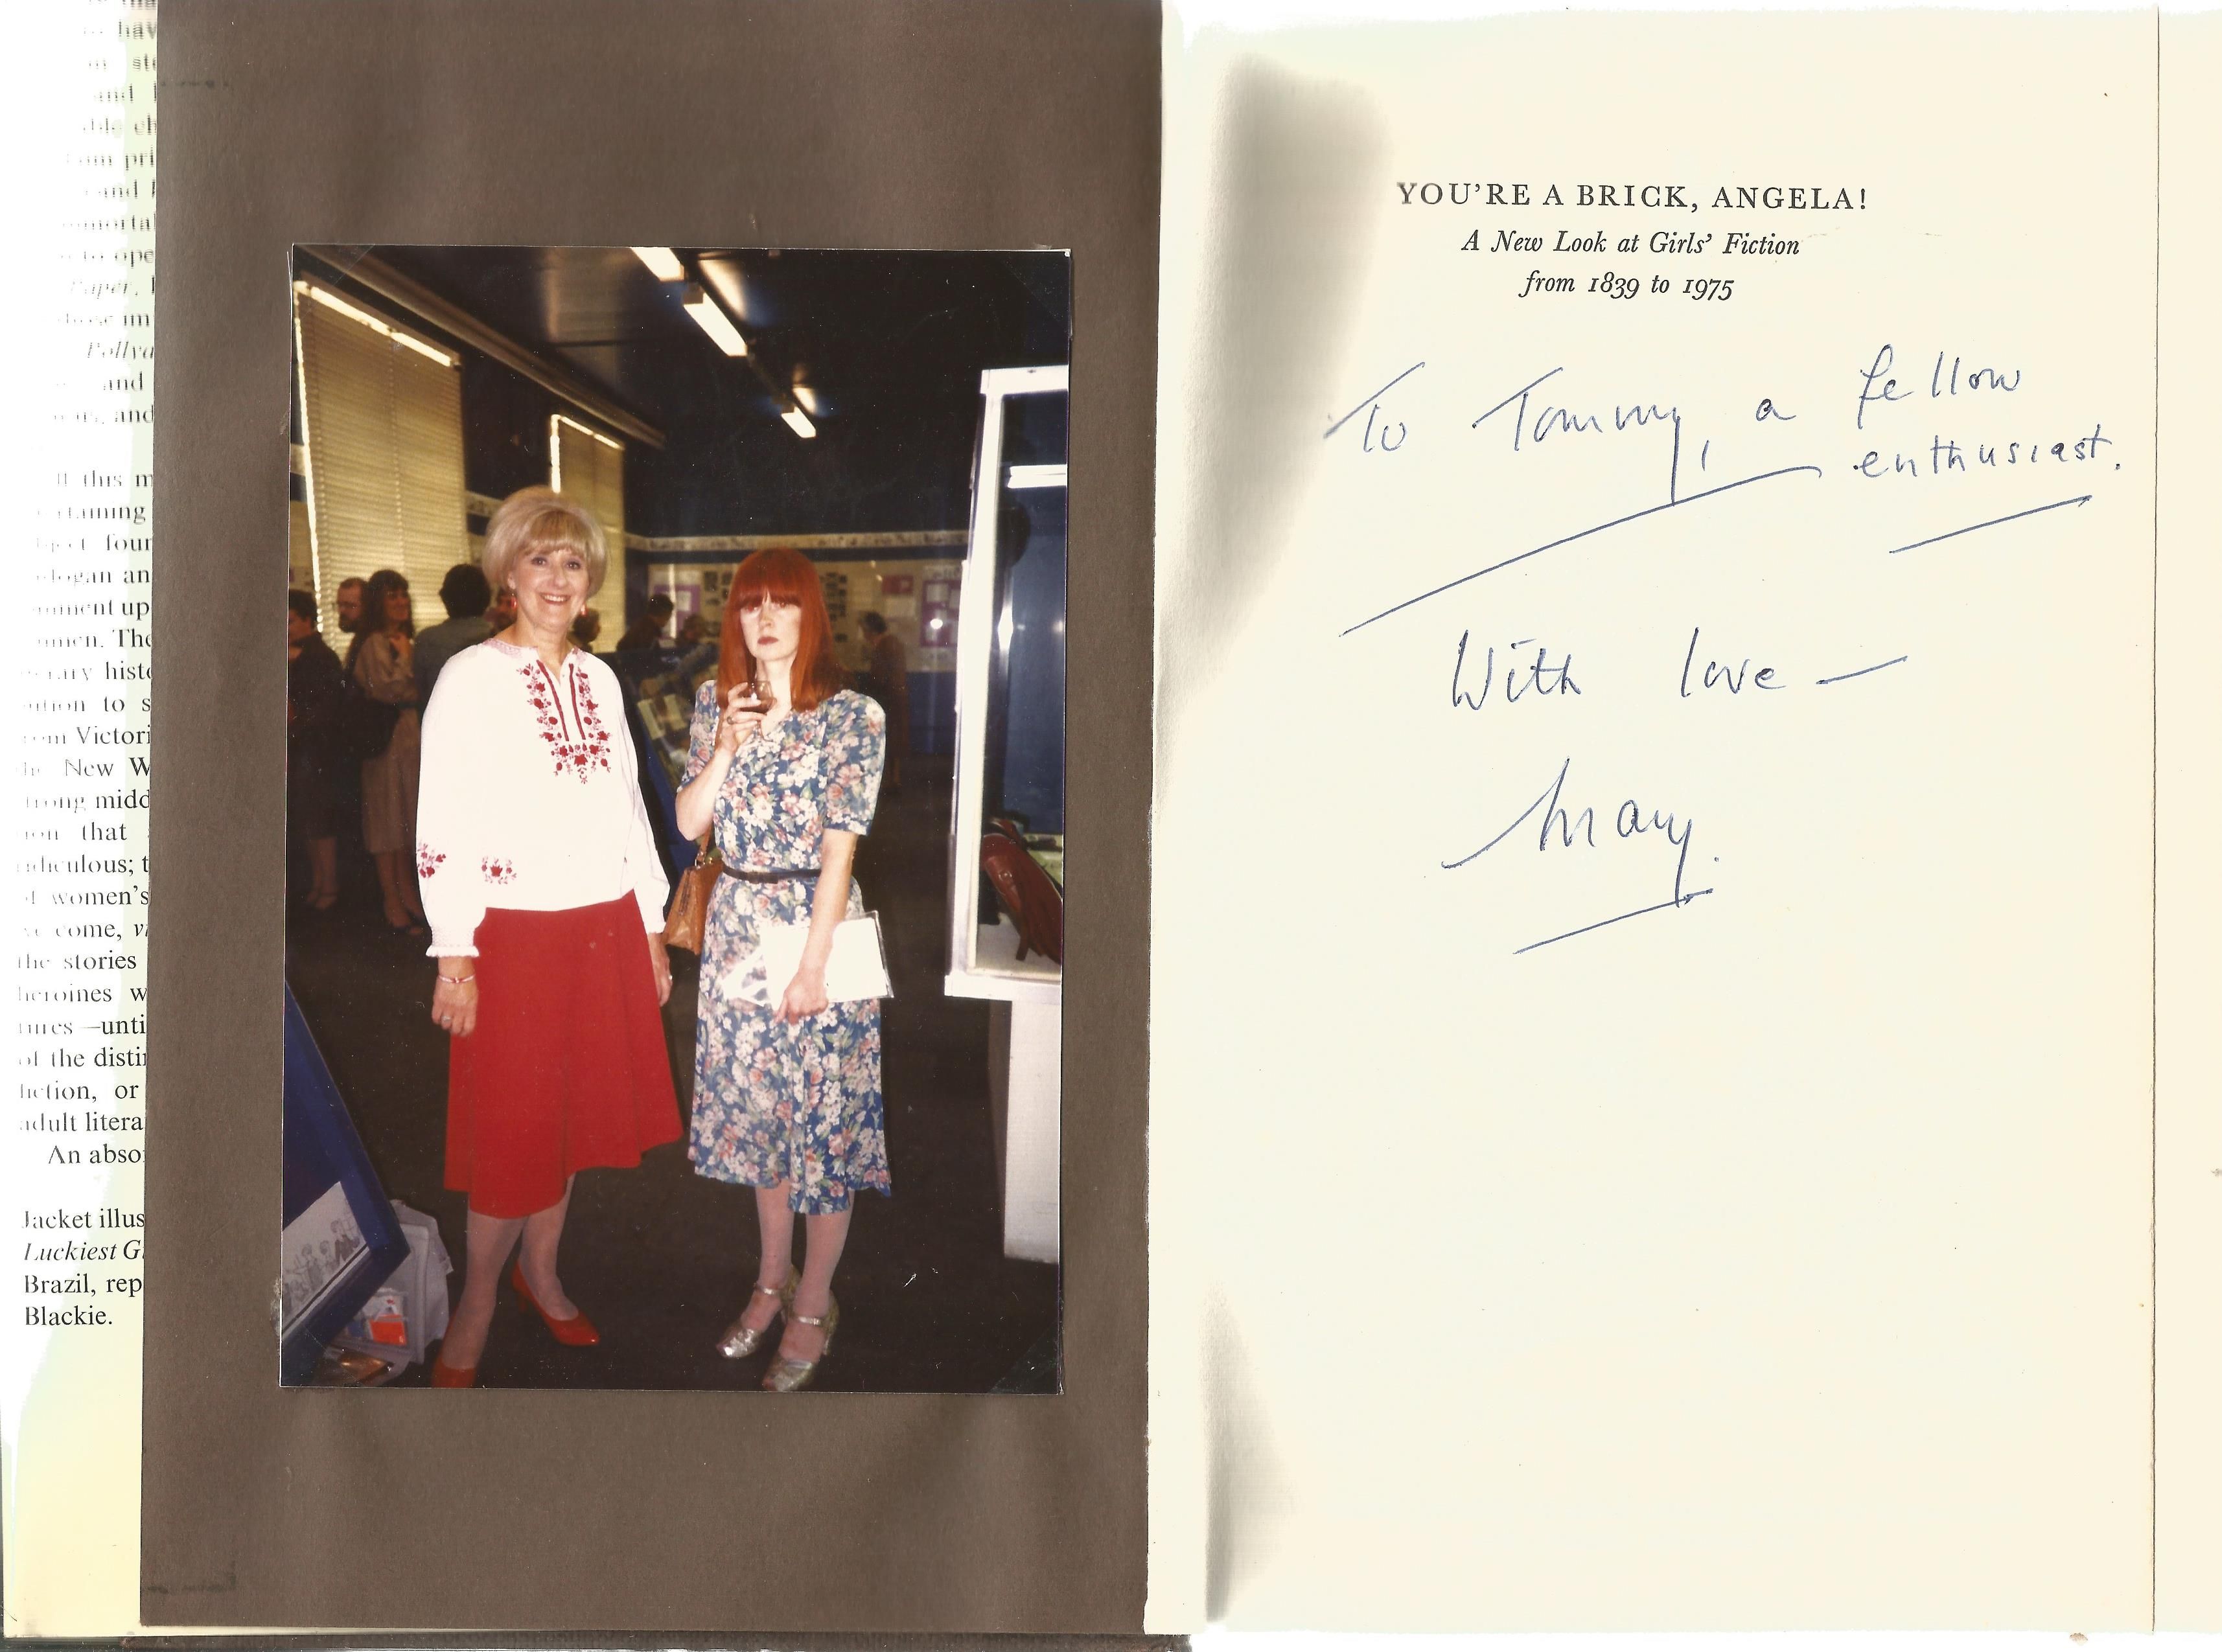 Mary Cadogan & Patricia Craig Hardback Book You're a brick Angela! a new look at Girl's Fiction from - Image 2 of 2